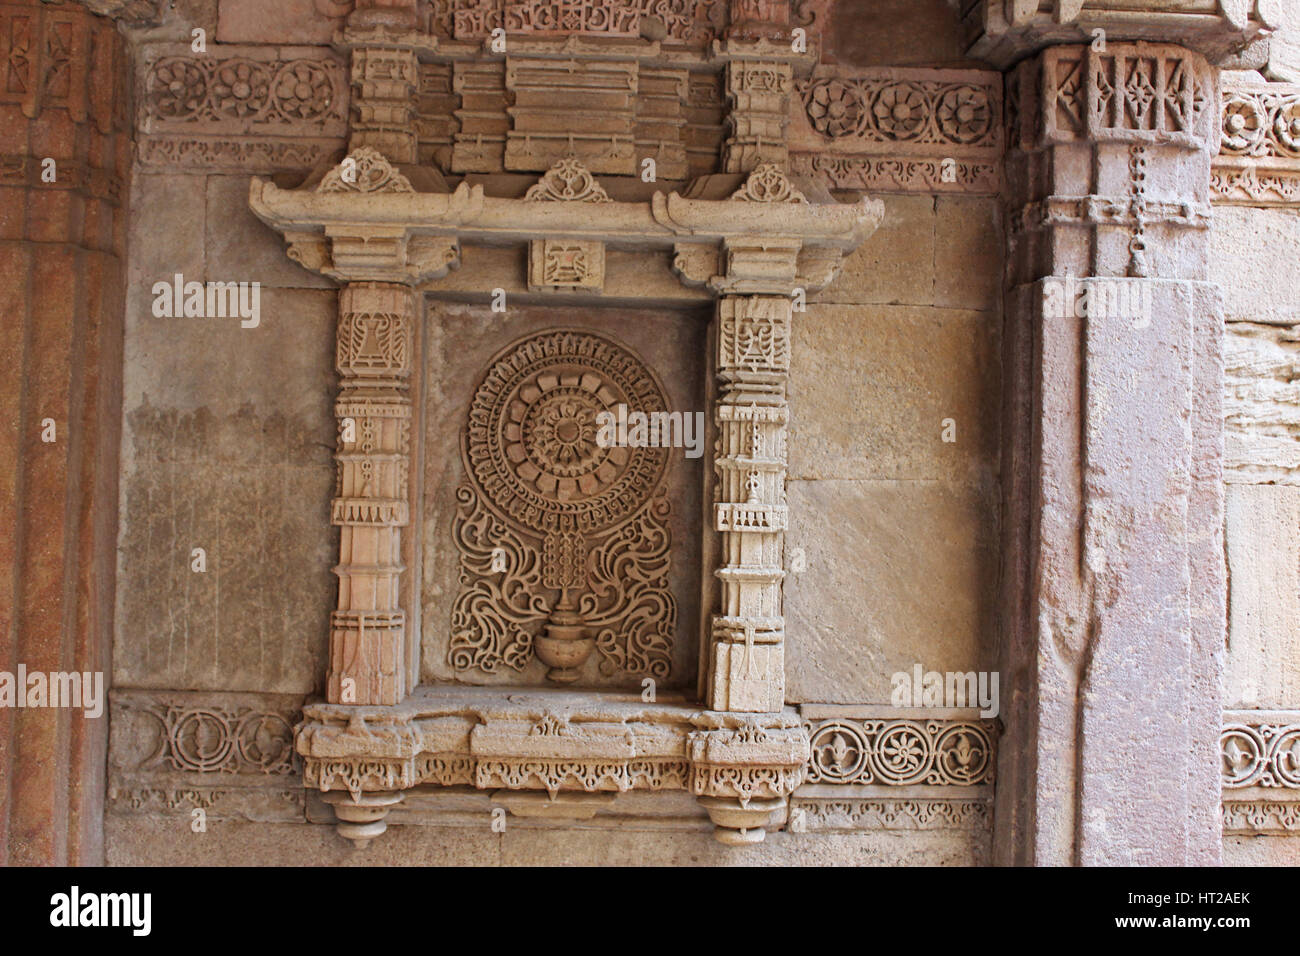 Exquisitely detailed motif in a niche on the side wall . Adalaj Stepwell, Ahmedabad, Gujarat, India - Stock Image